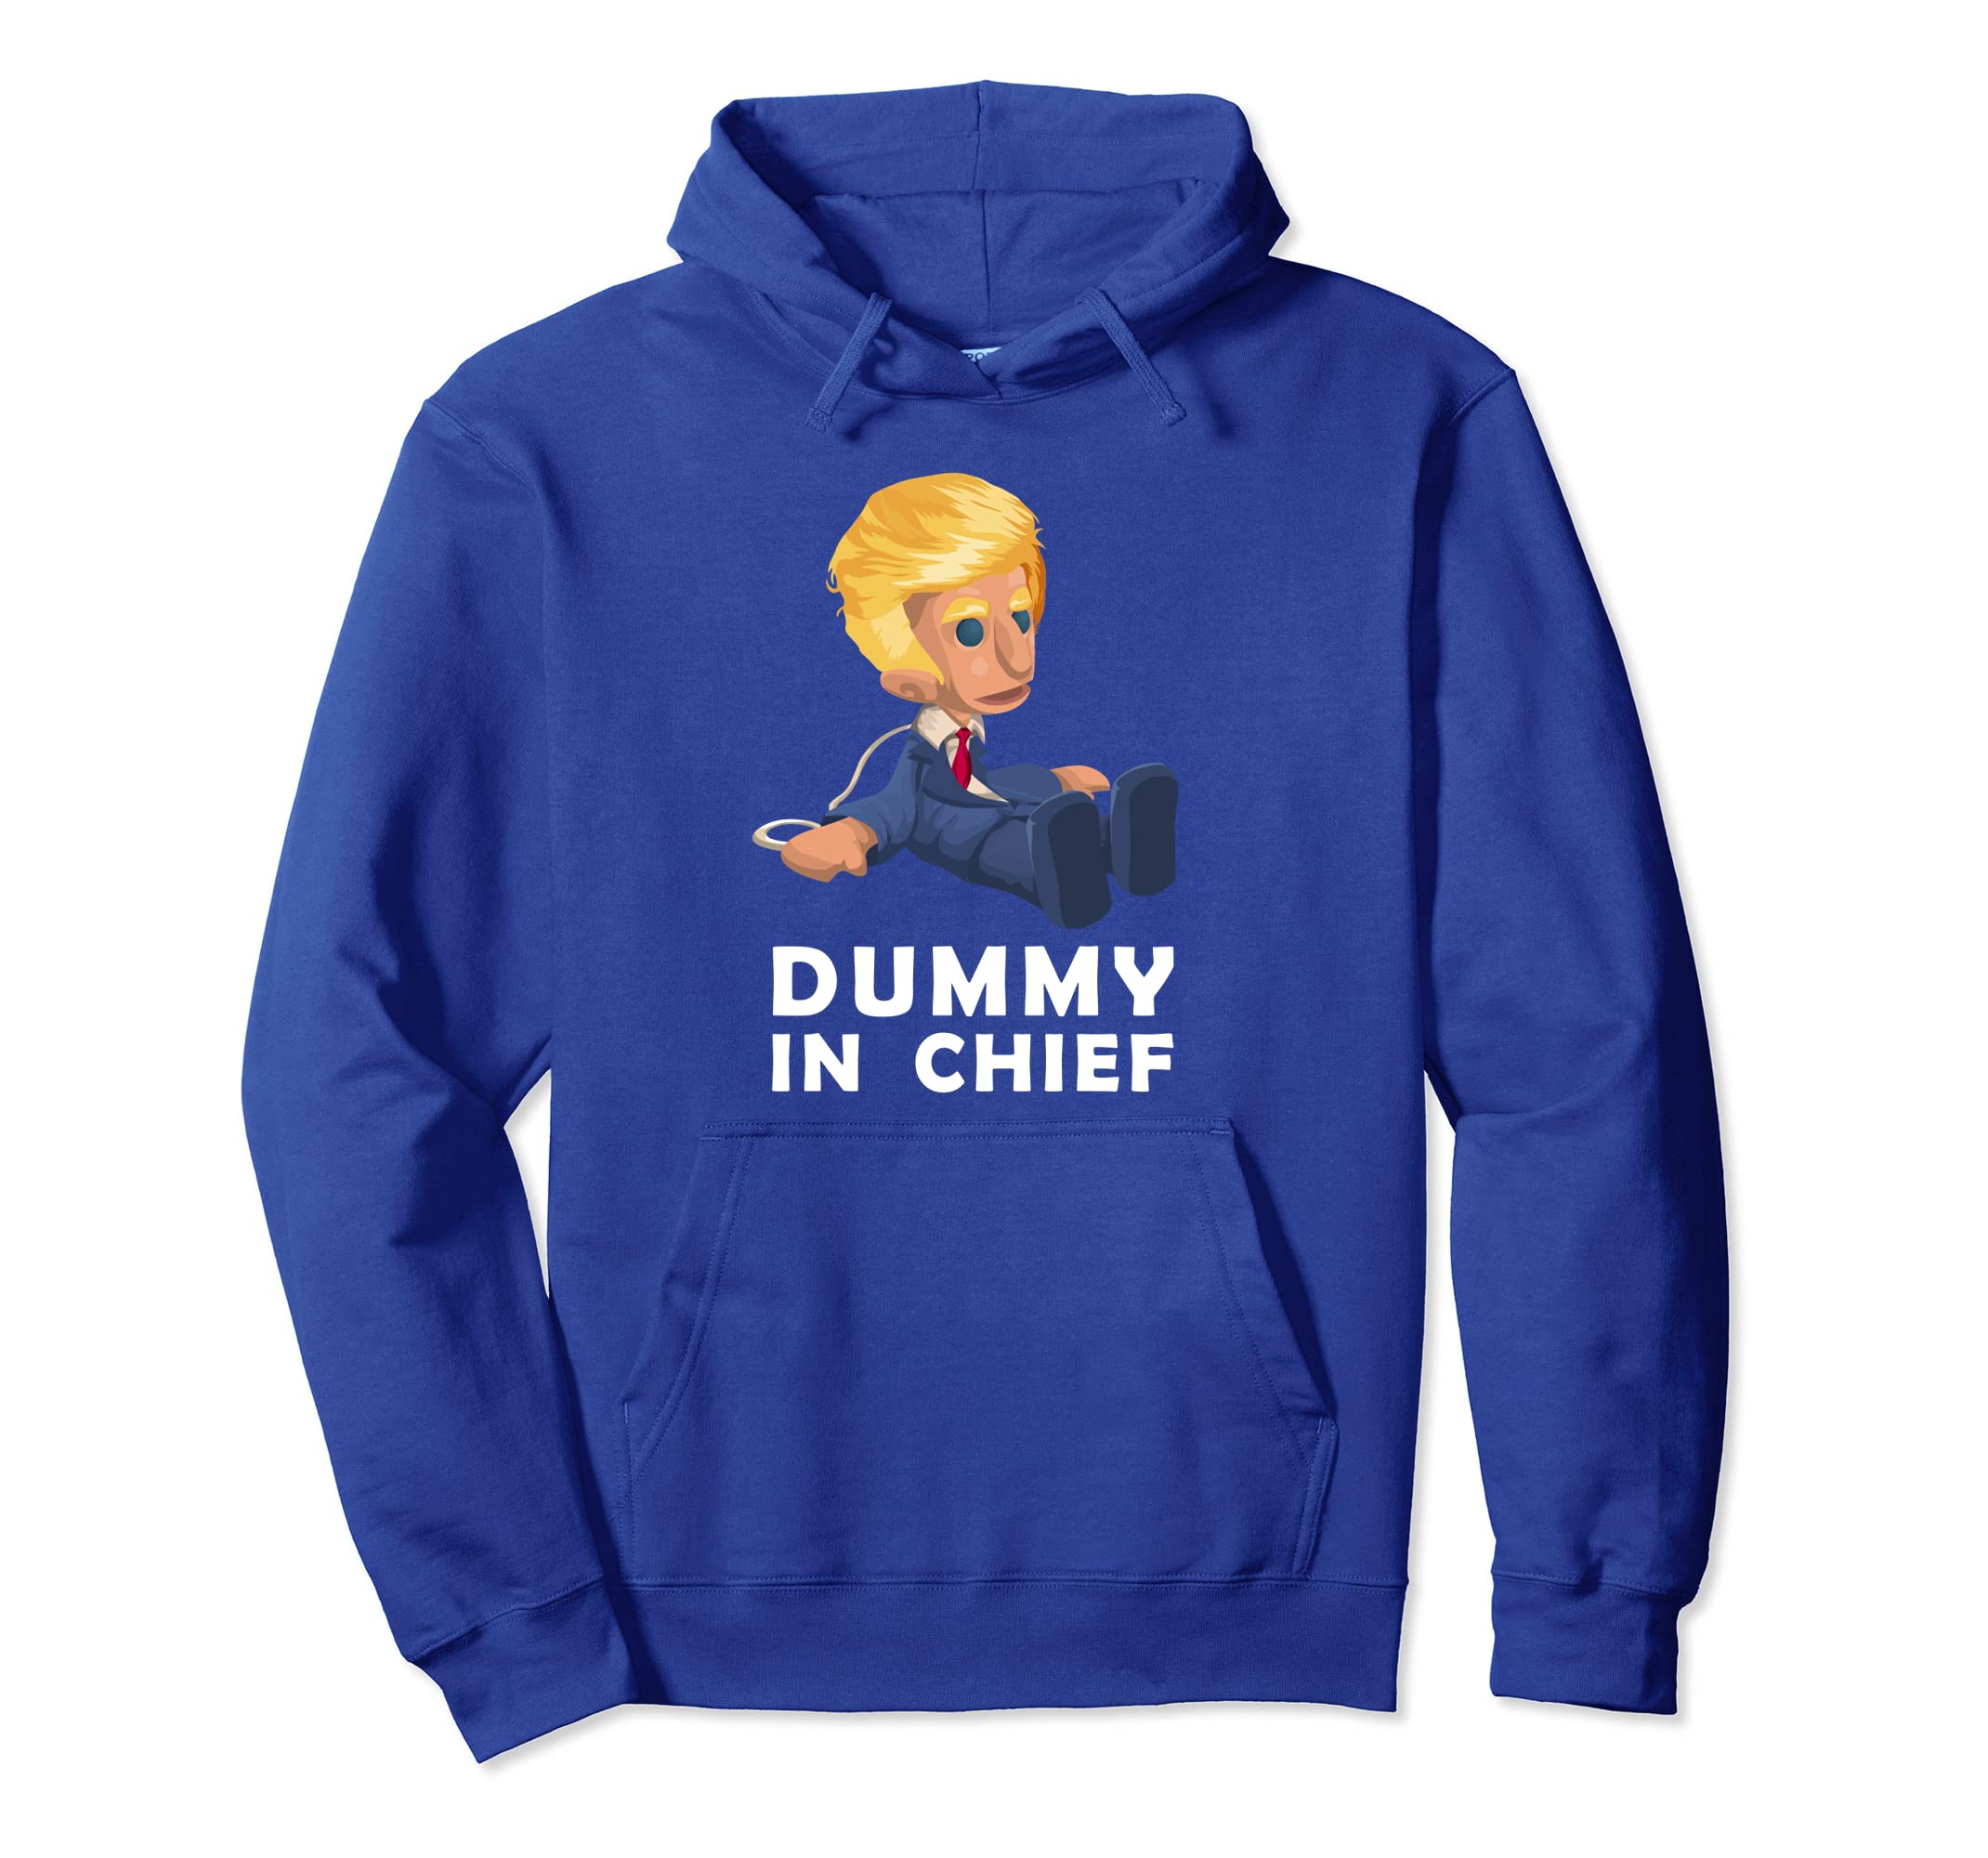 Anti Donald Trump Hoodie, Puppet In Chief Political Apparel